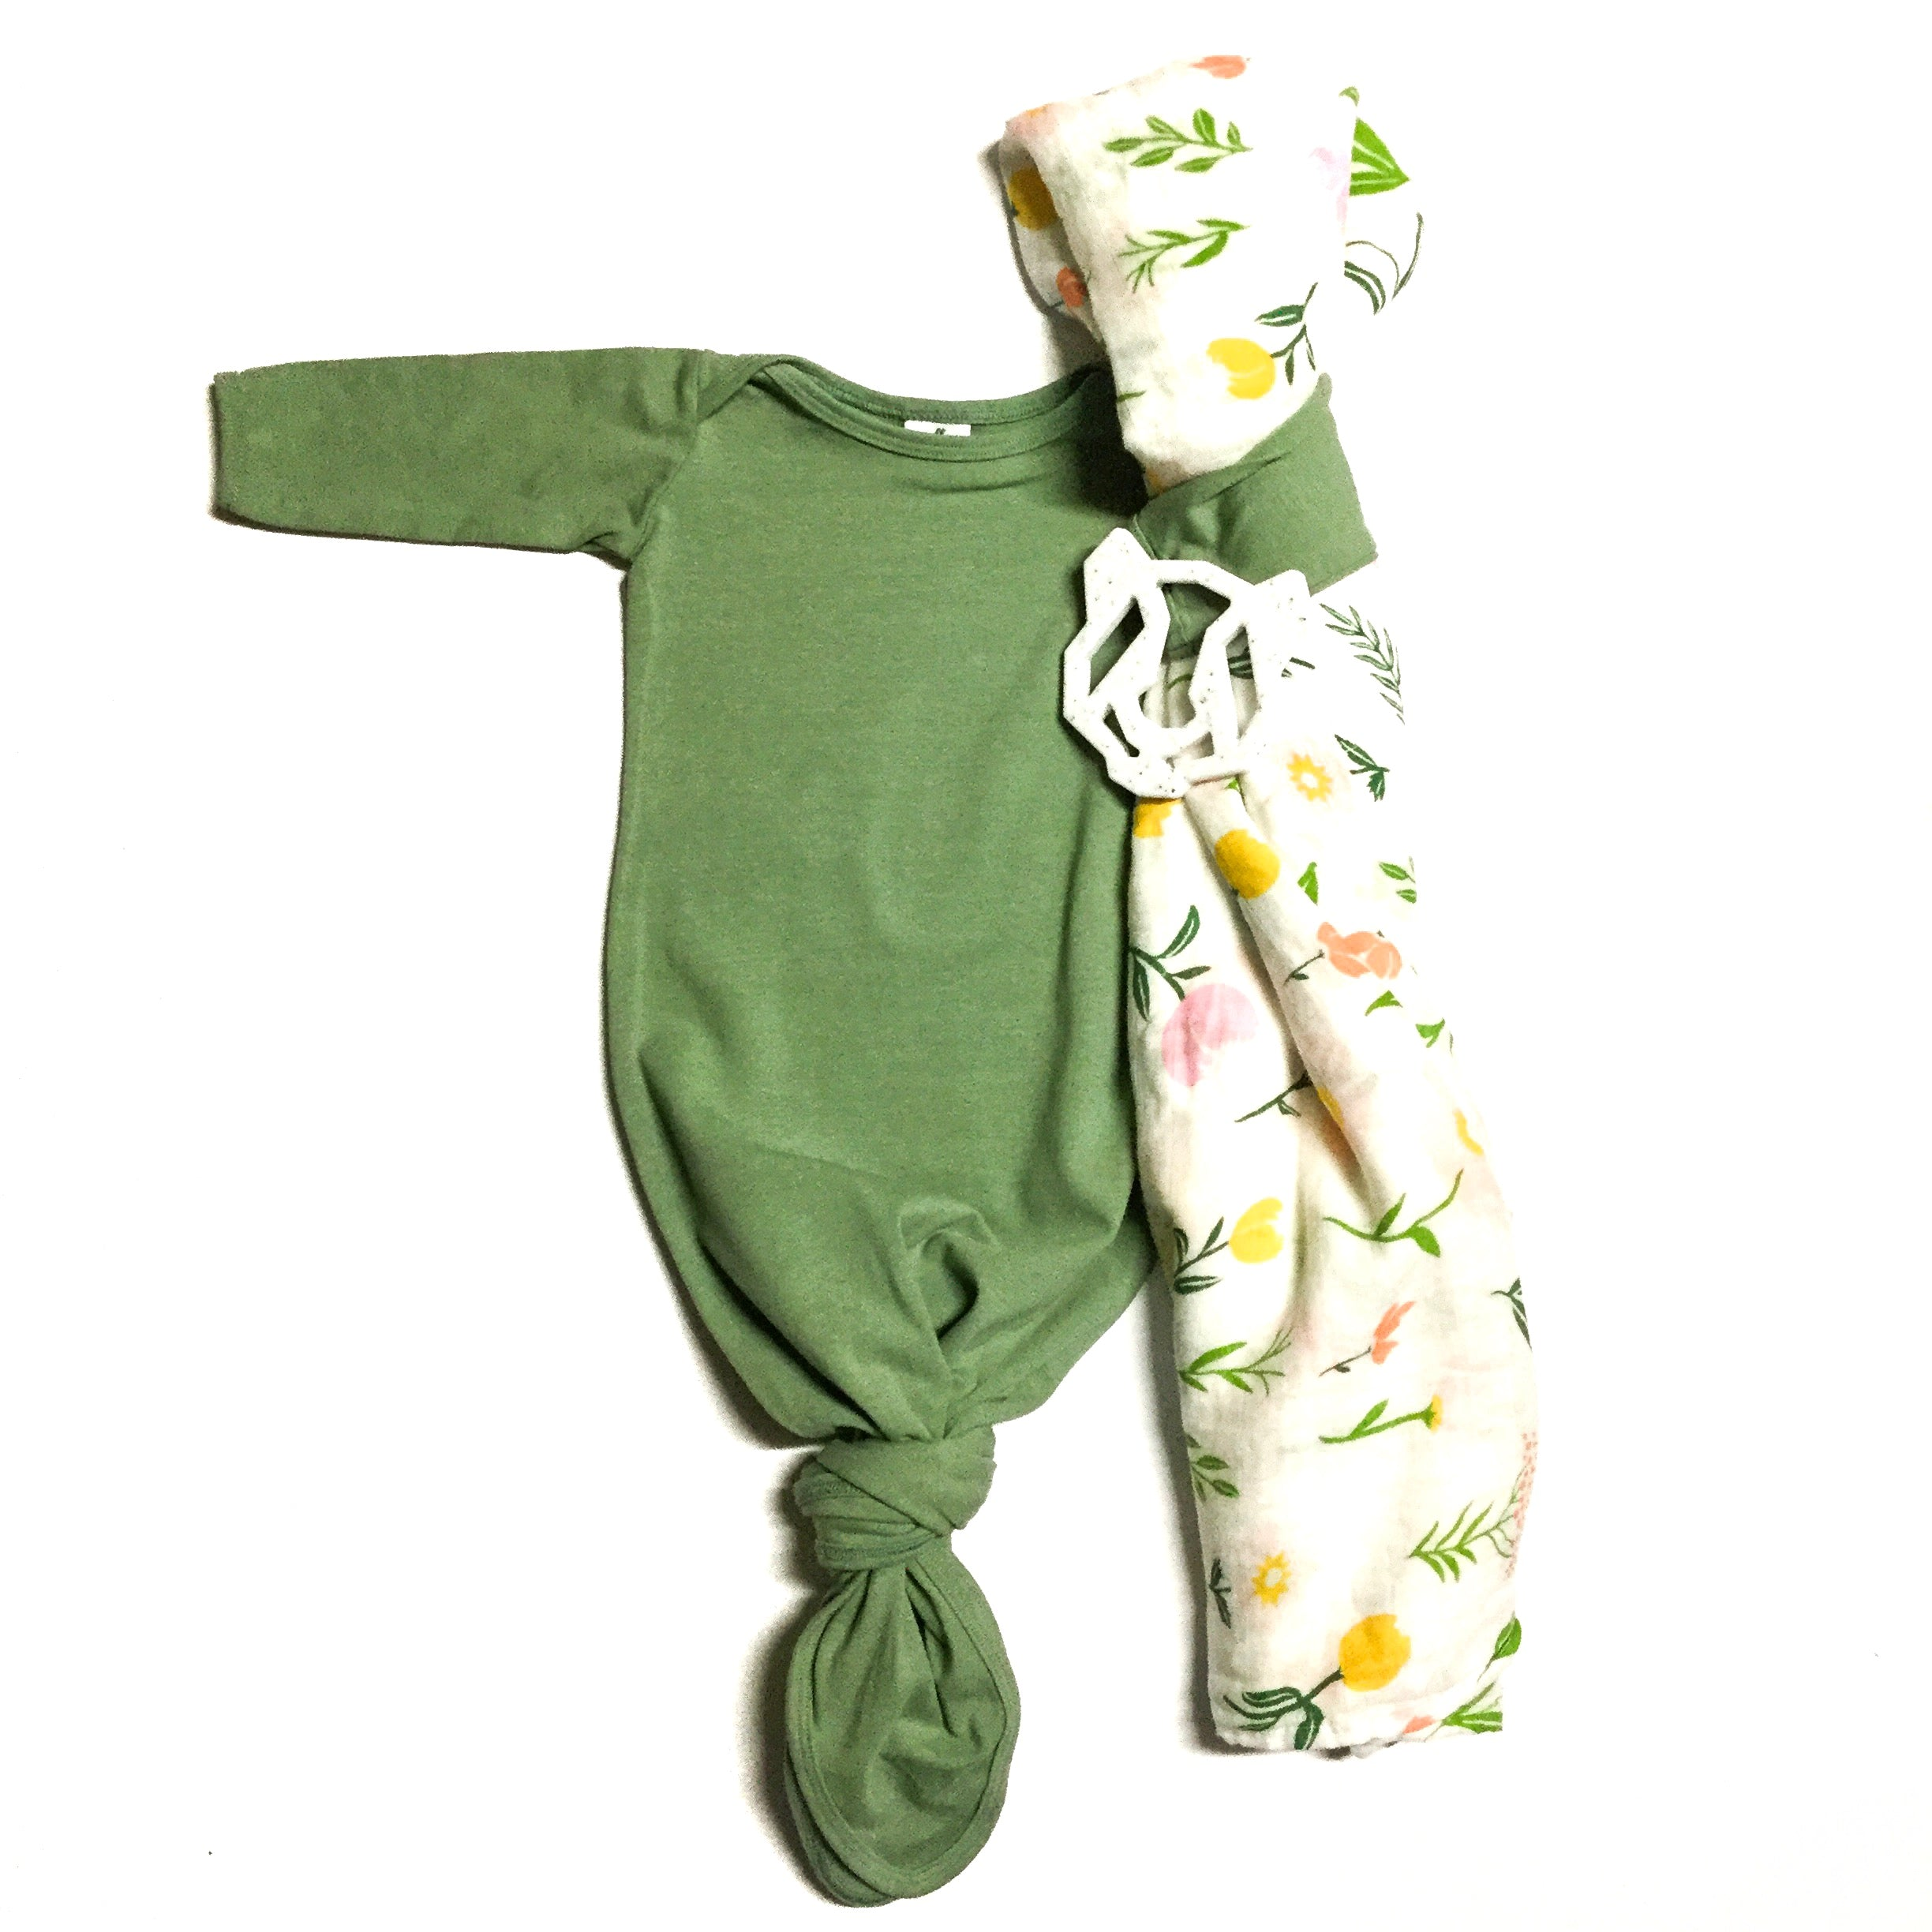 gender neutral baby gown green with spring flowers swaddle blanket and white teething toy